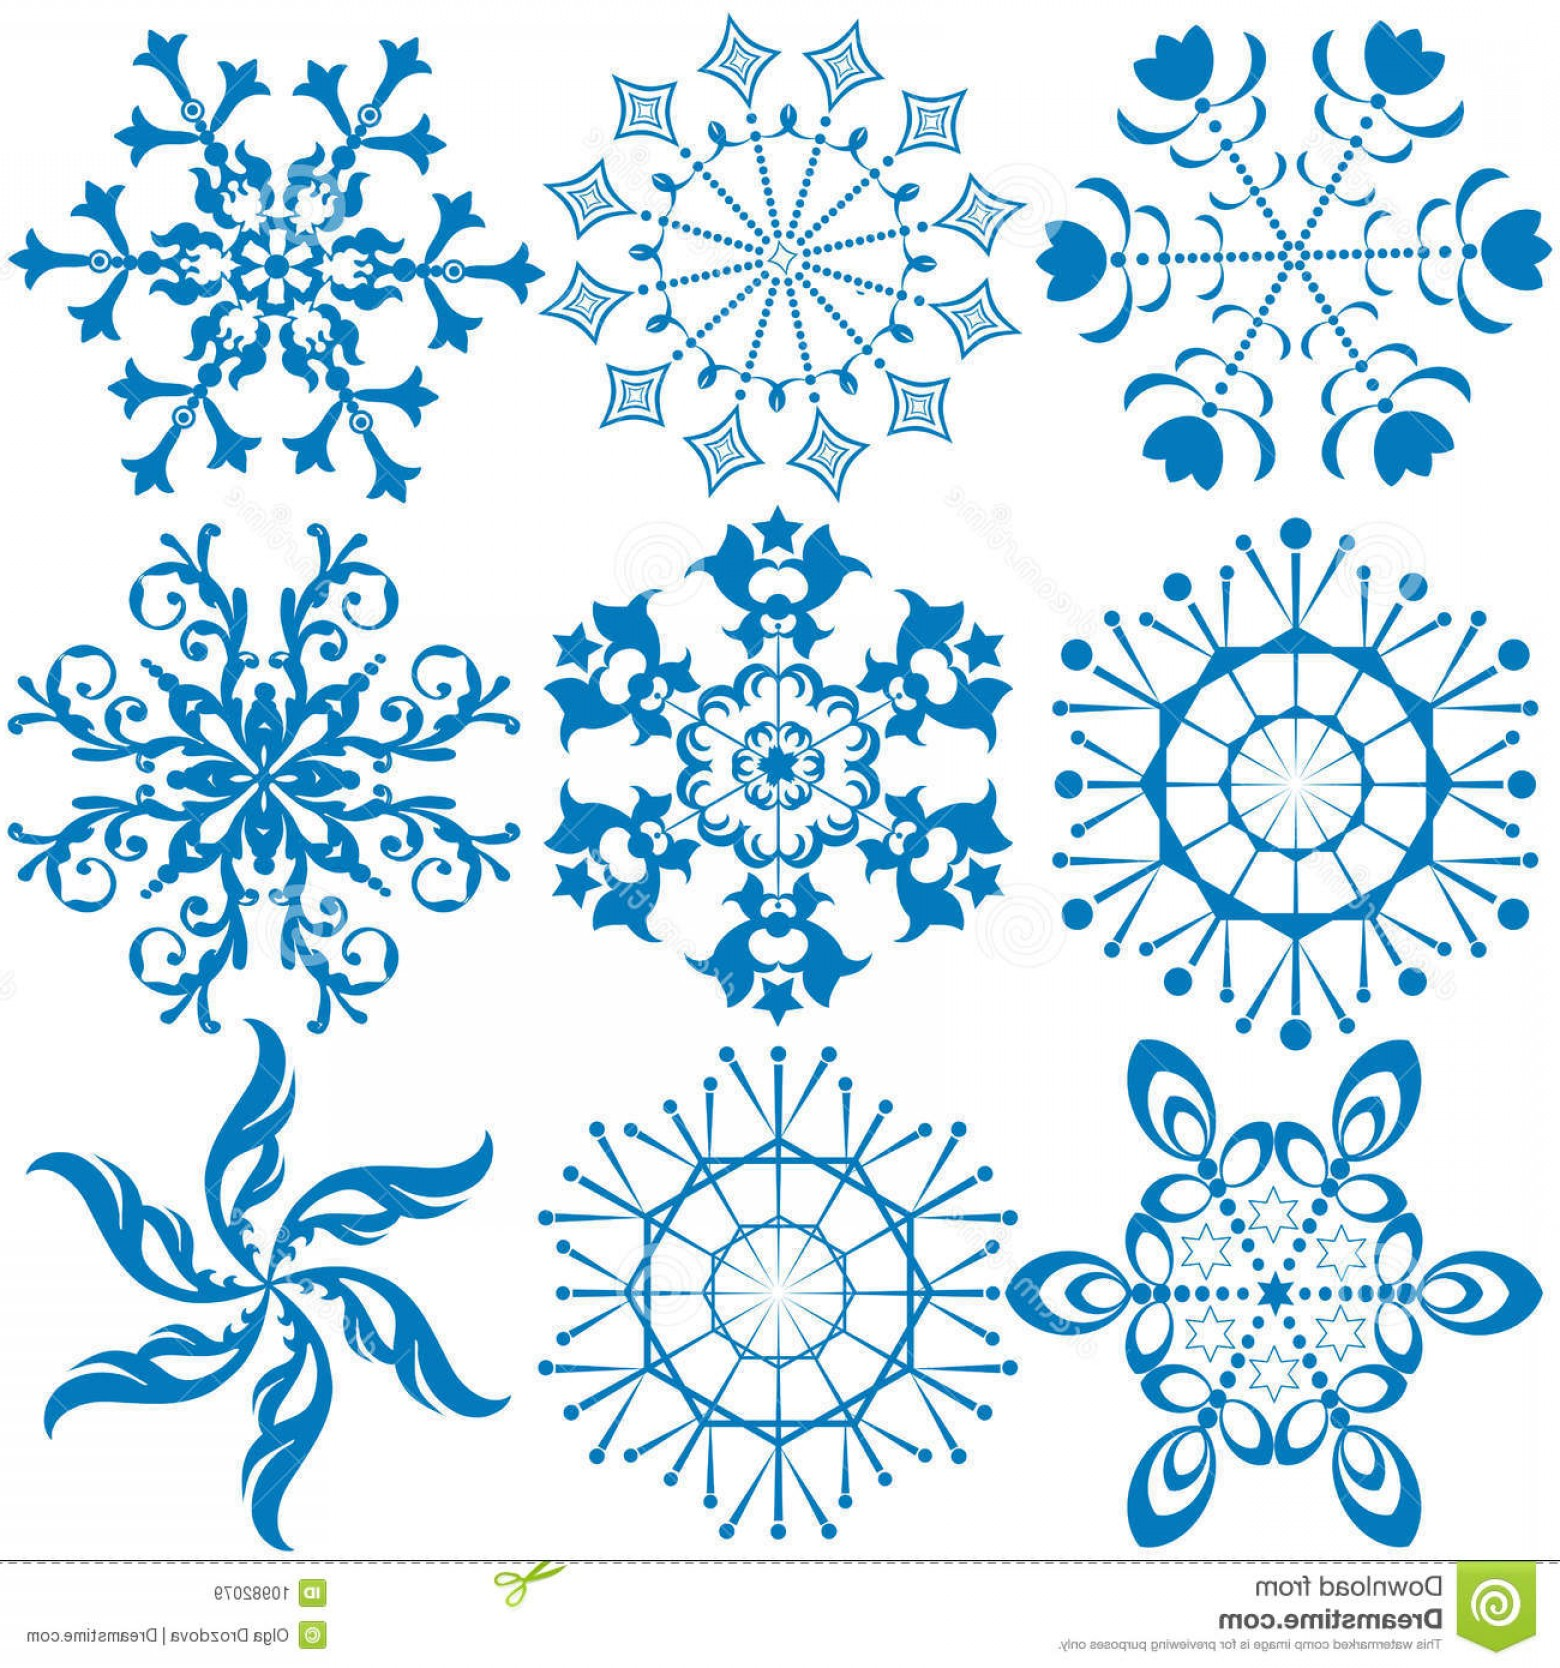 White Snowflake Vector Art: Royalty Free Stock Images Collection Dark Blue Snowflakes Vector Image